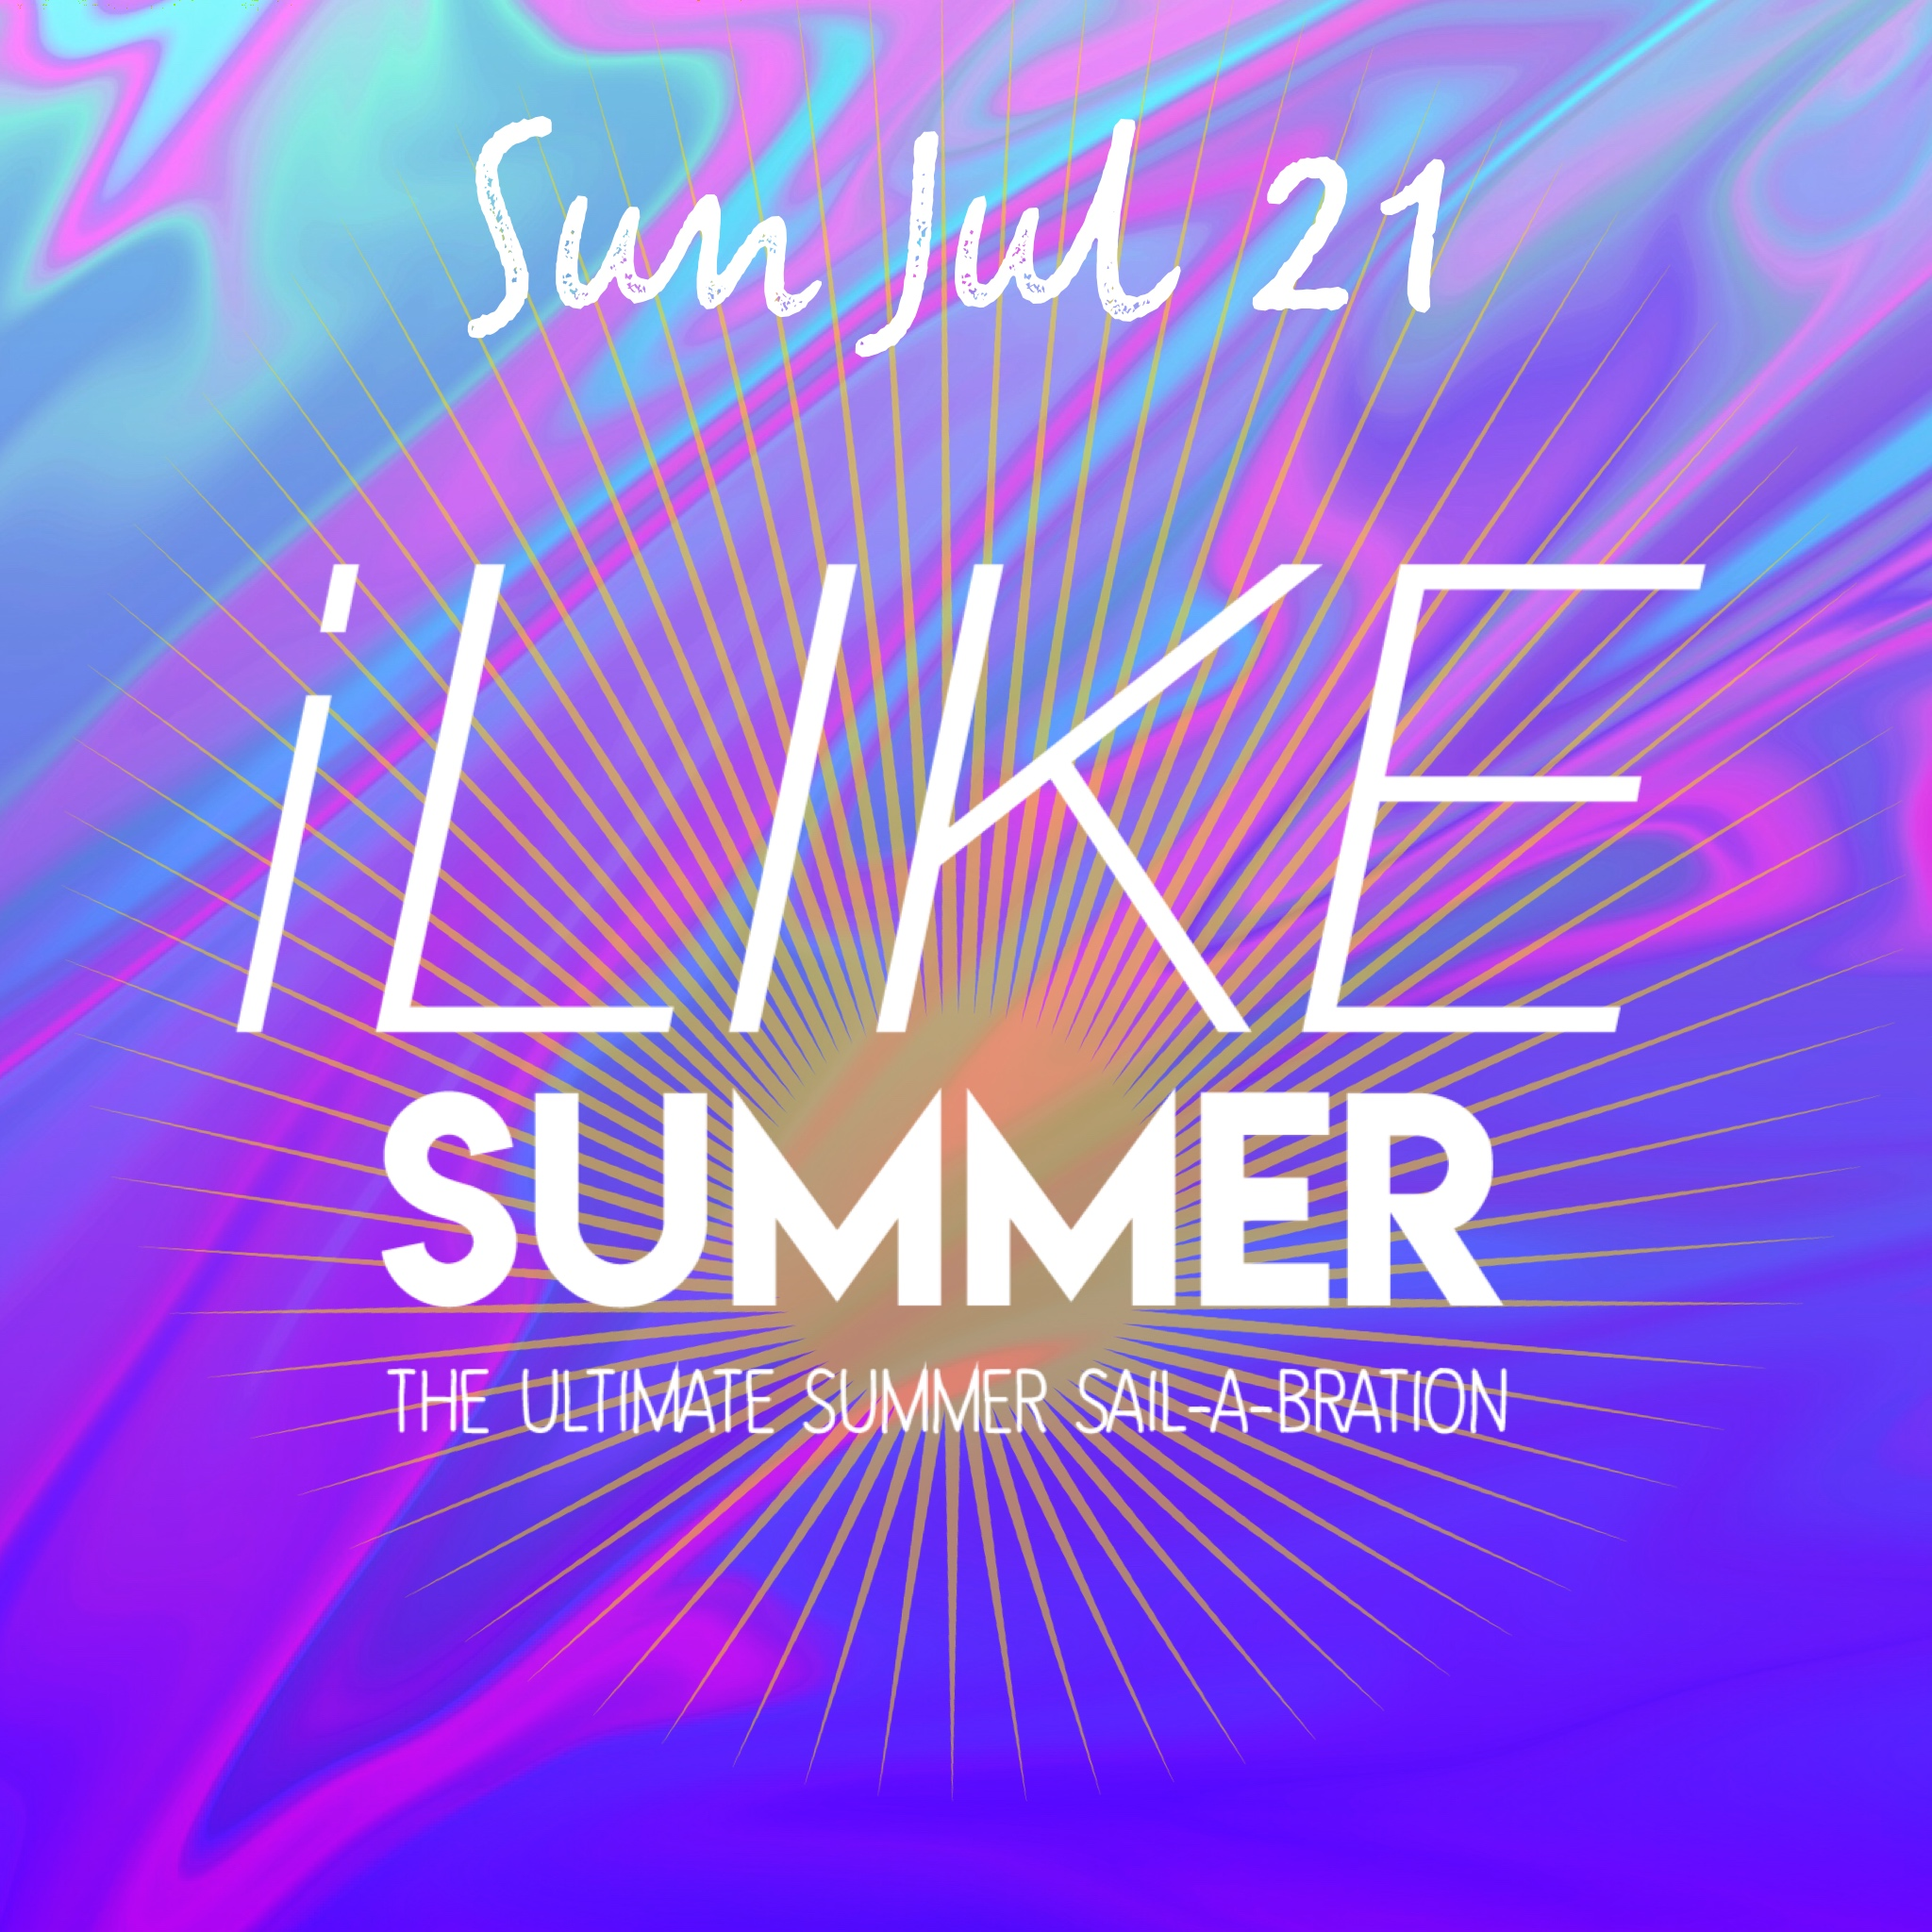 iLIKE SUMMER   THE ULTIMATE DAYTIME SUMMER SAIL-A-BRATION